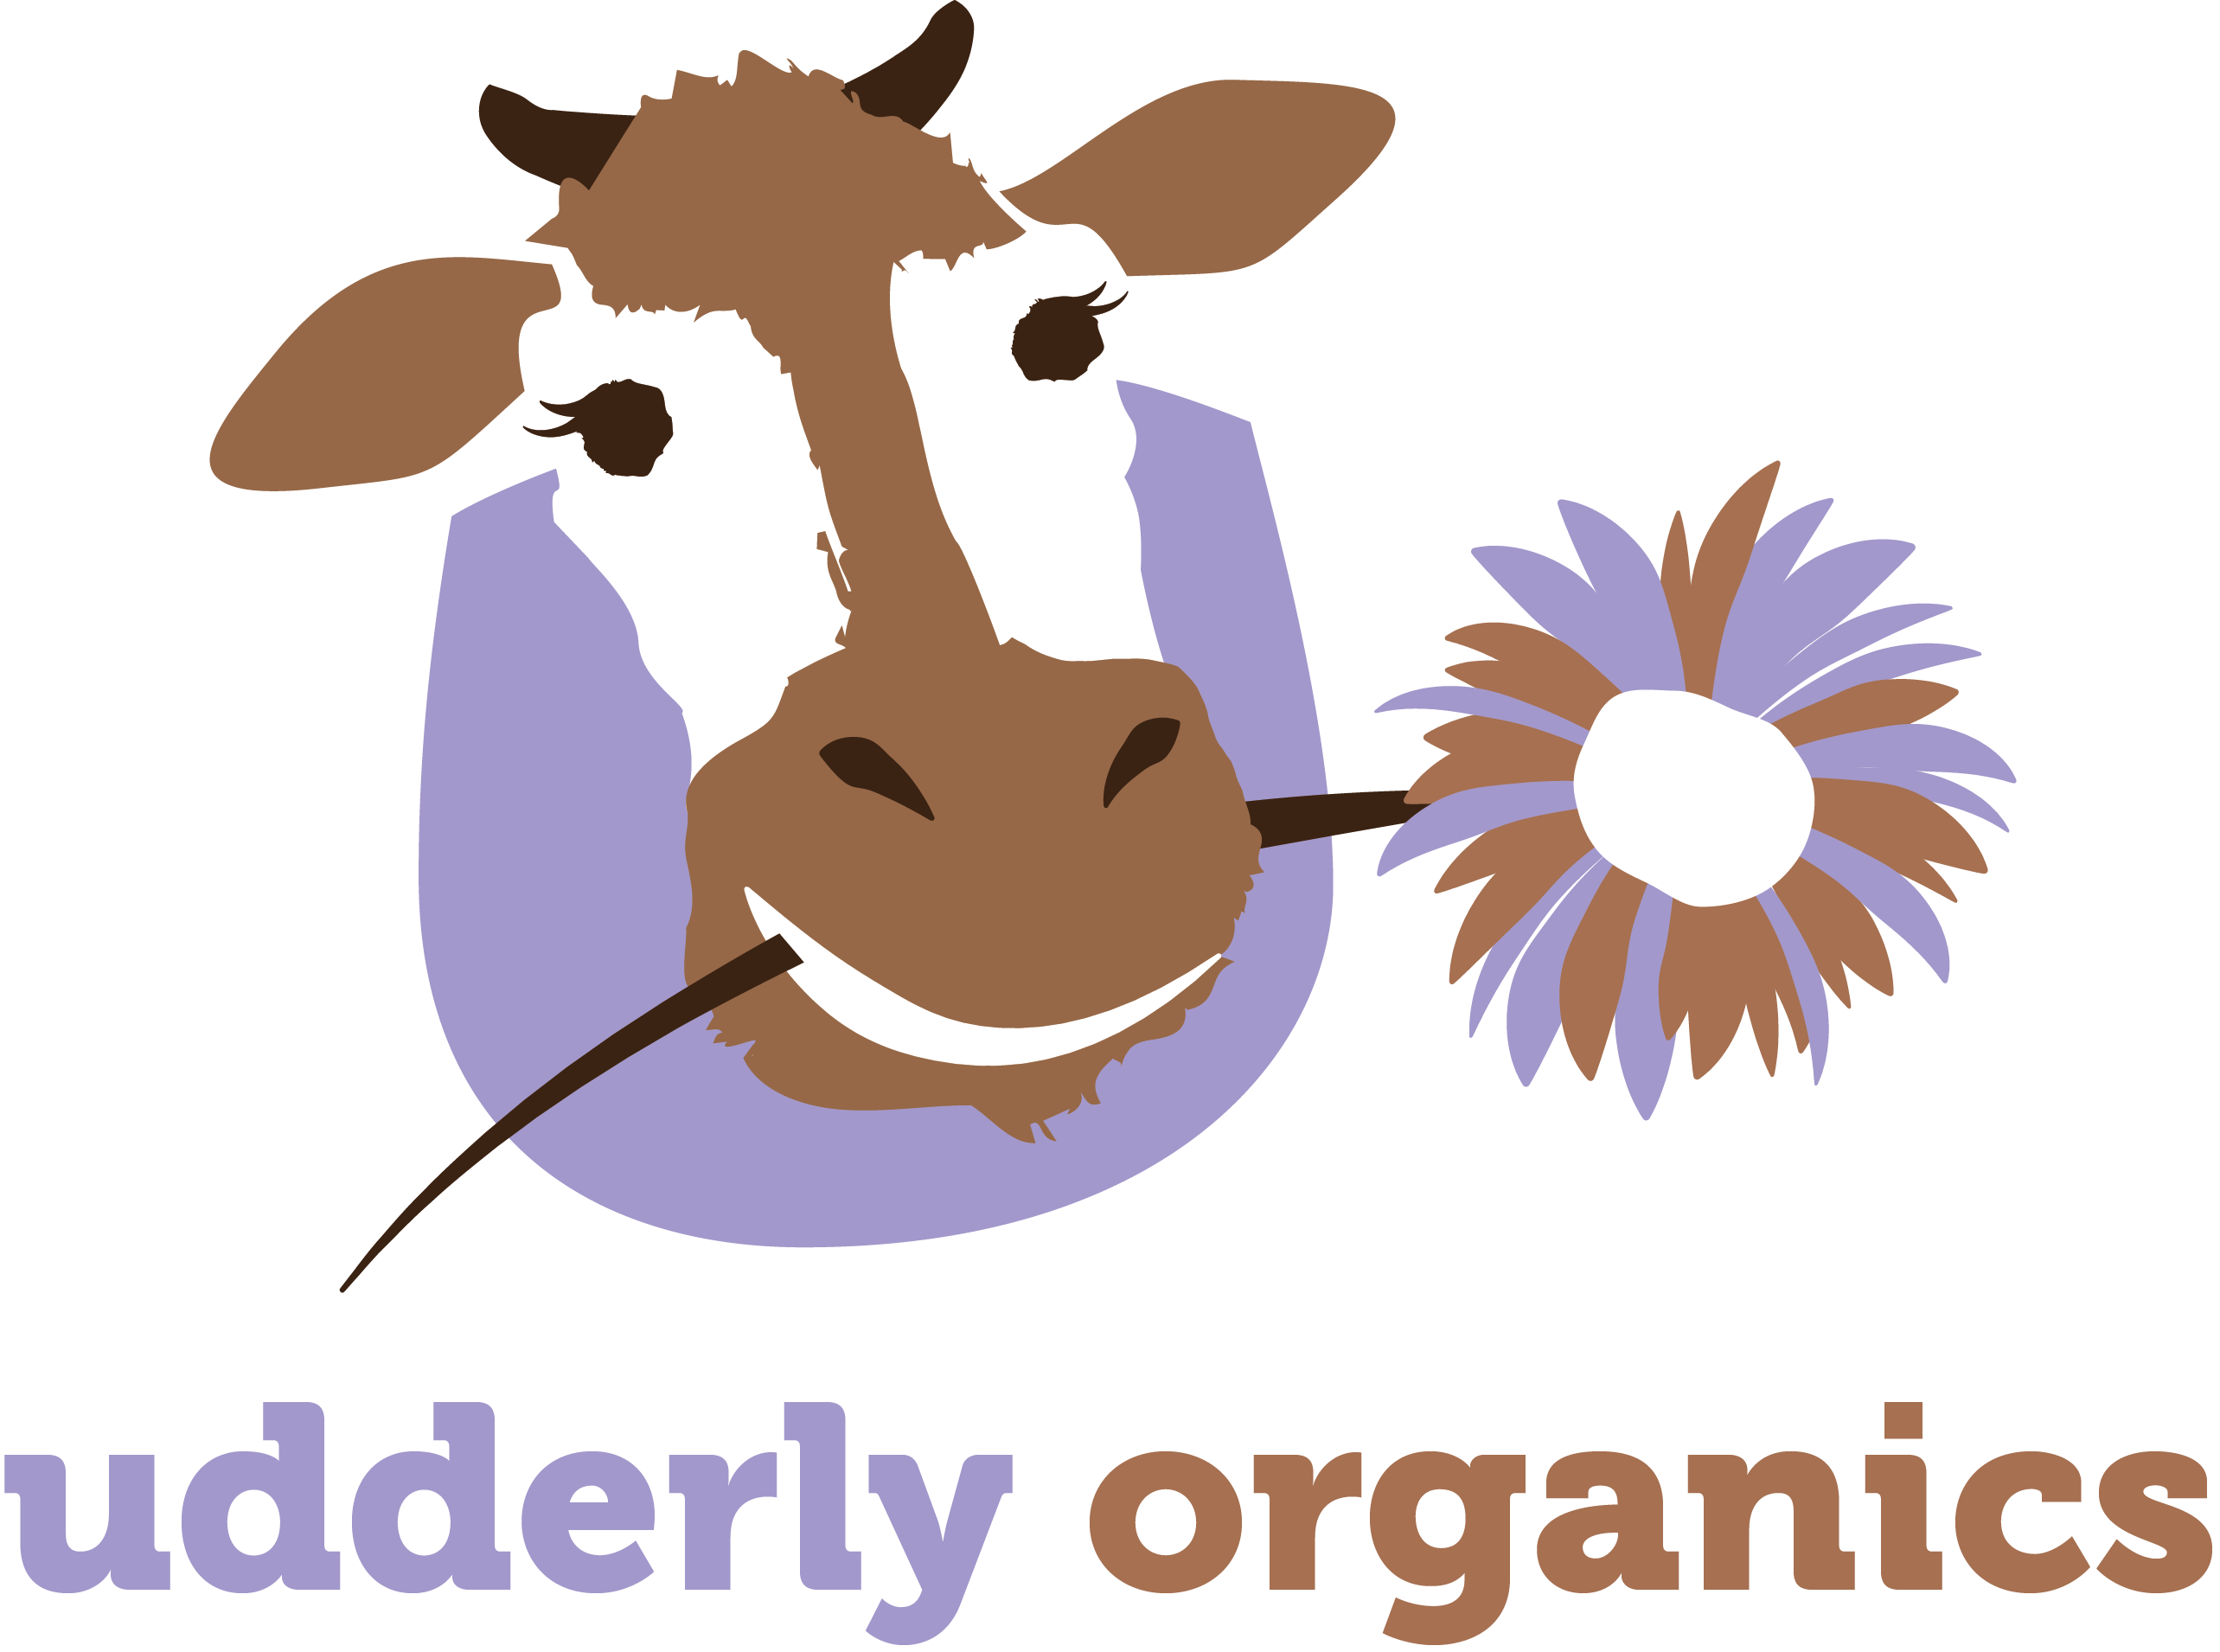 Udderly Organics logo designed by Fingerprint Marketing